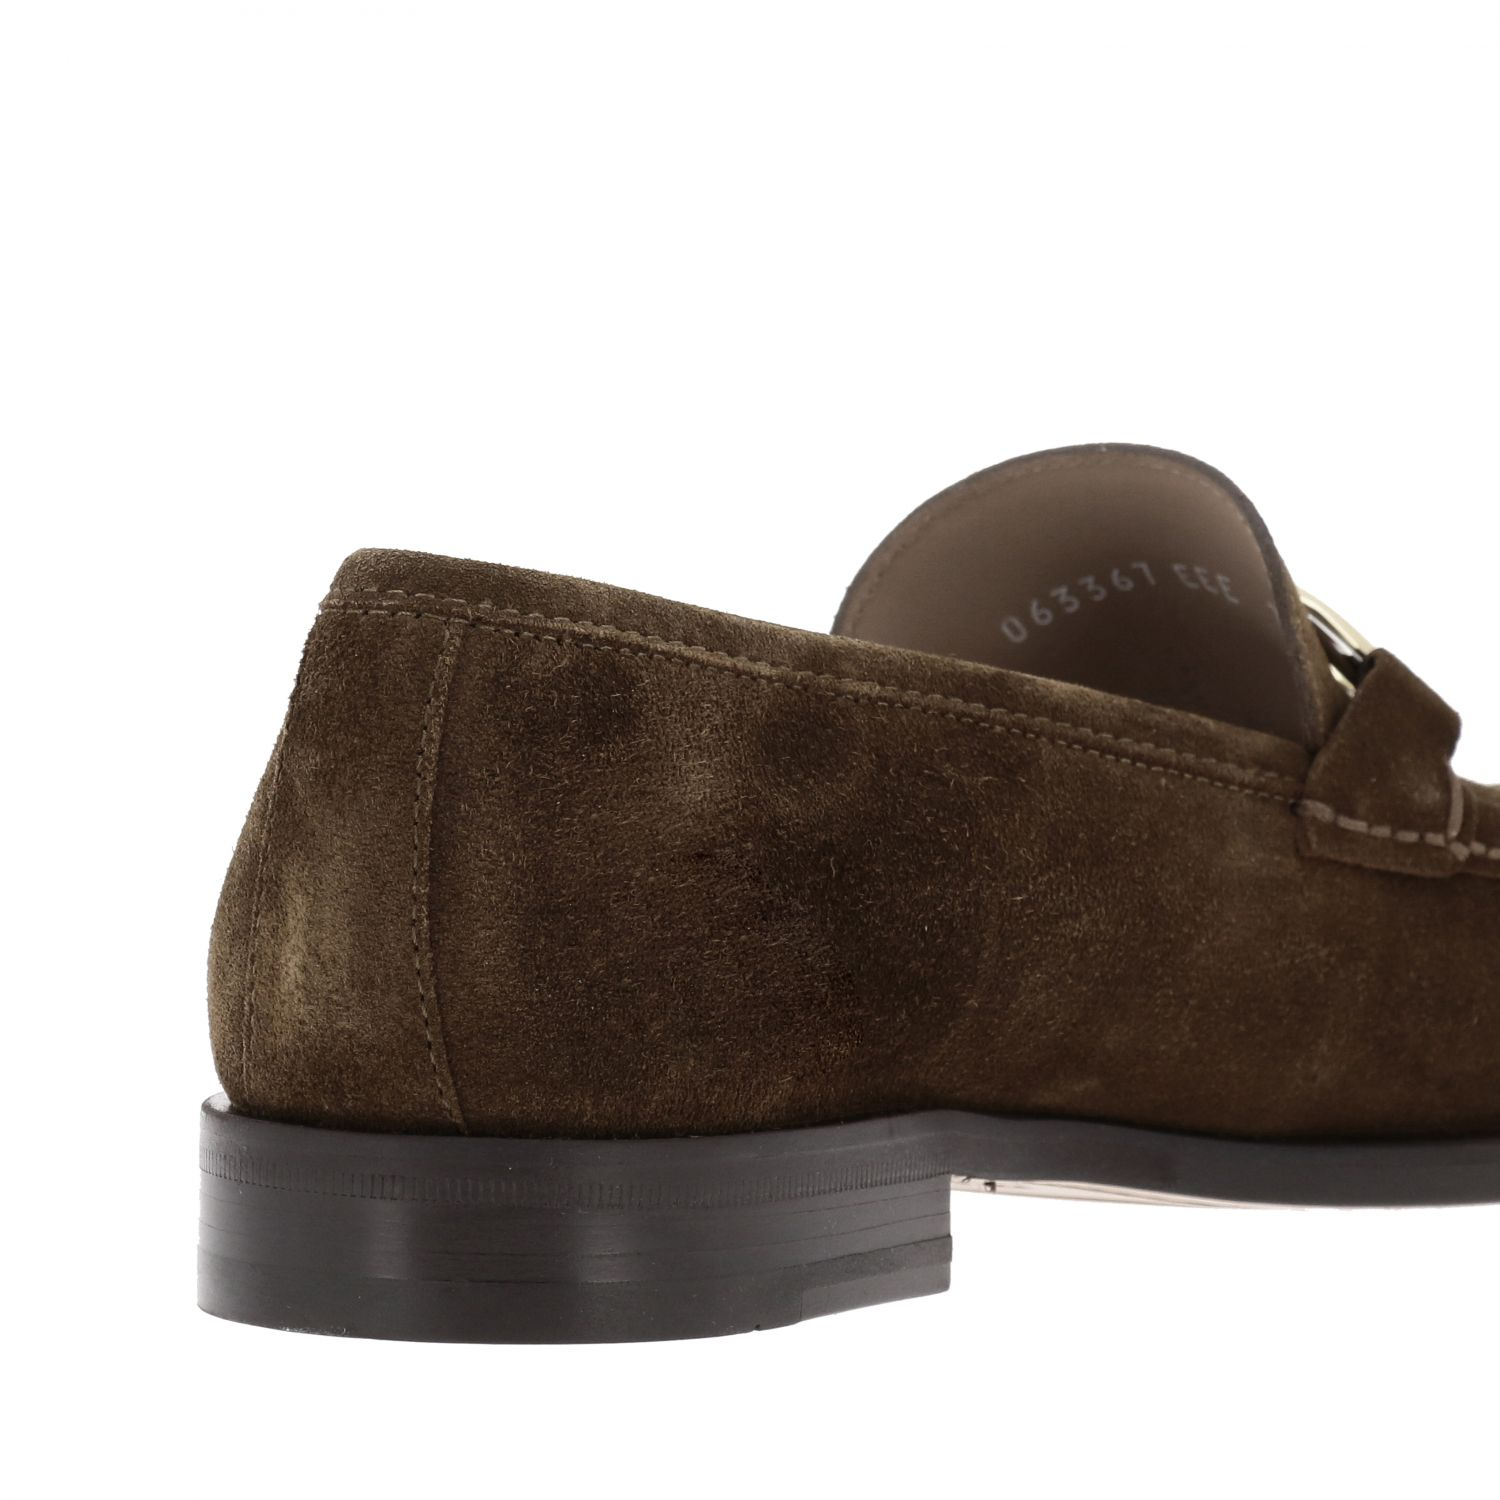 Shoes men Salvatore Ferragamo brown 5